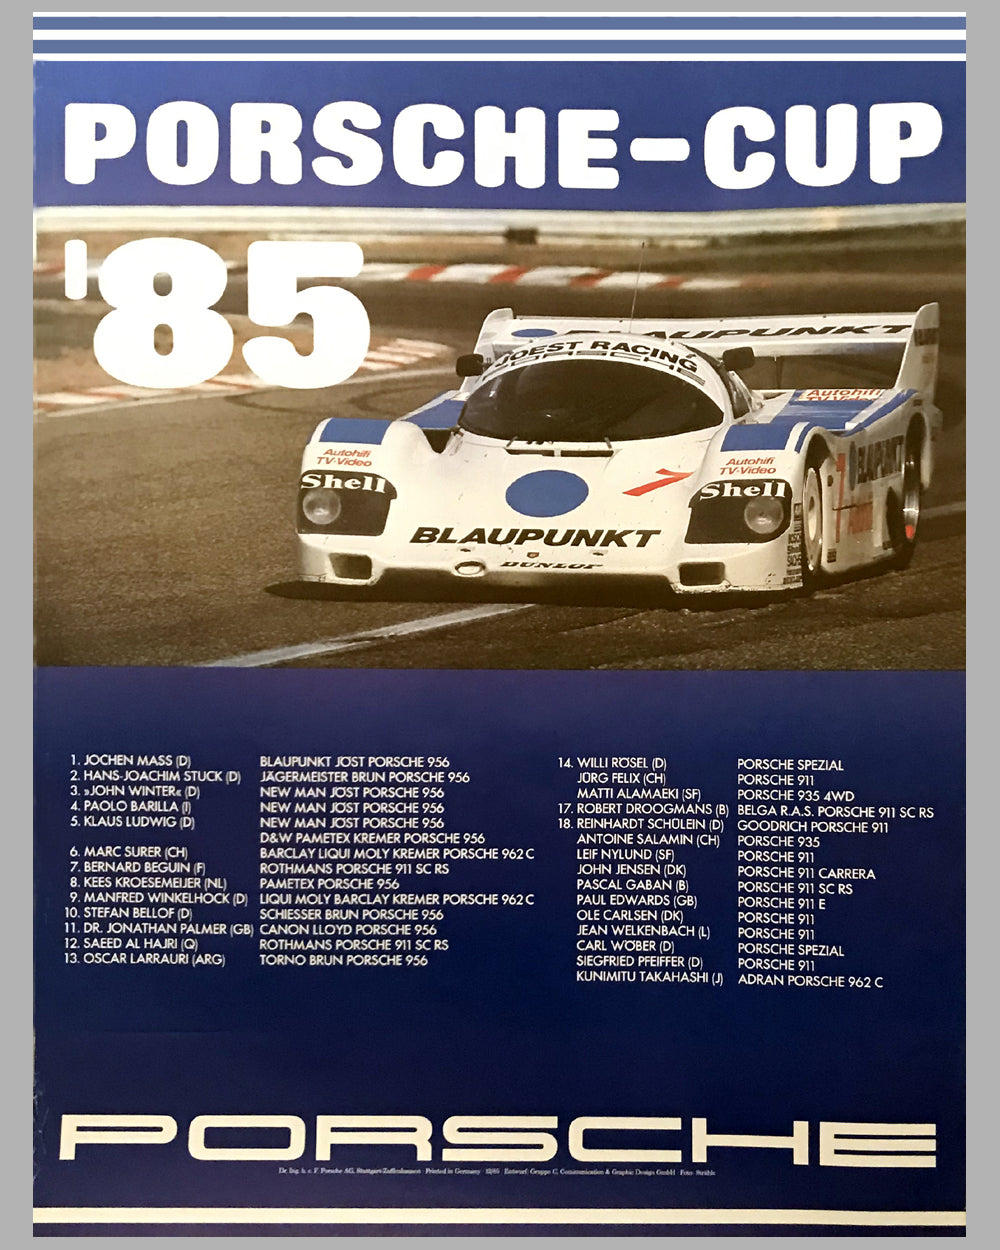 1985 Porsche Cup Champions Victory Poster